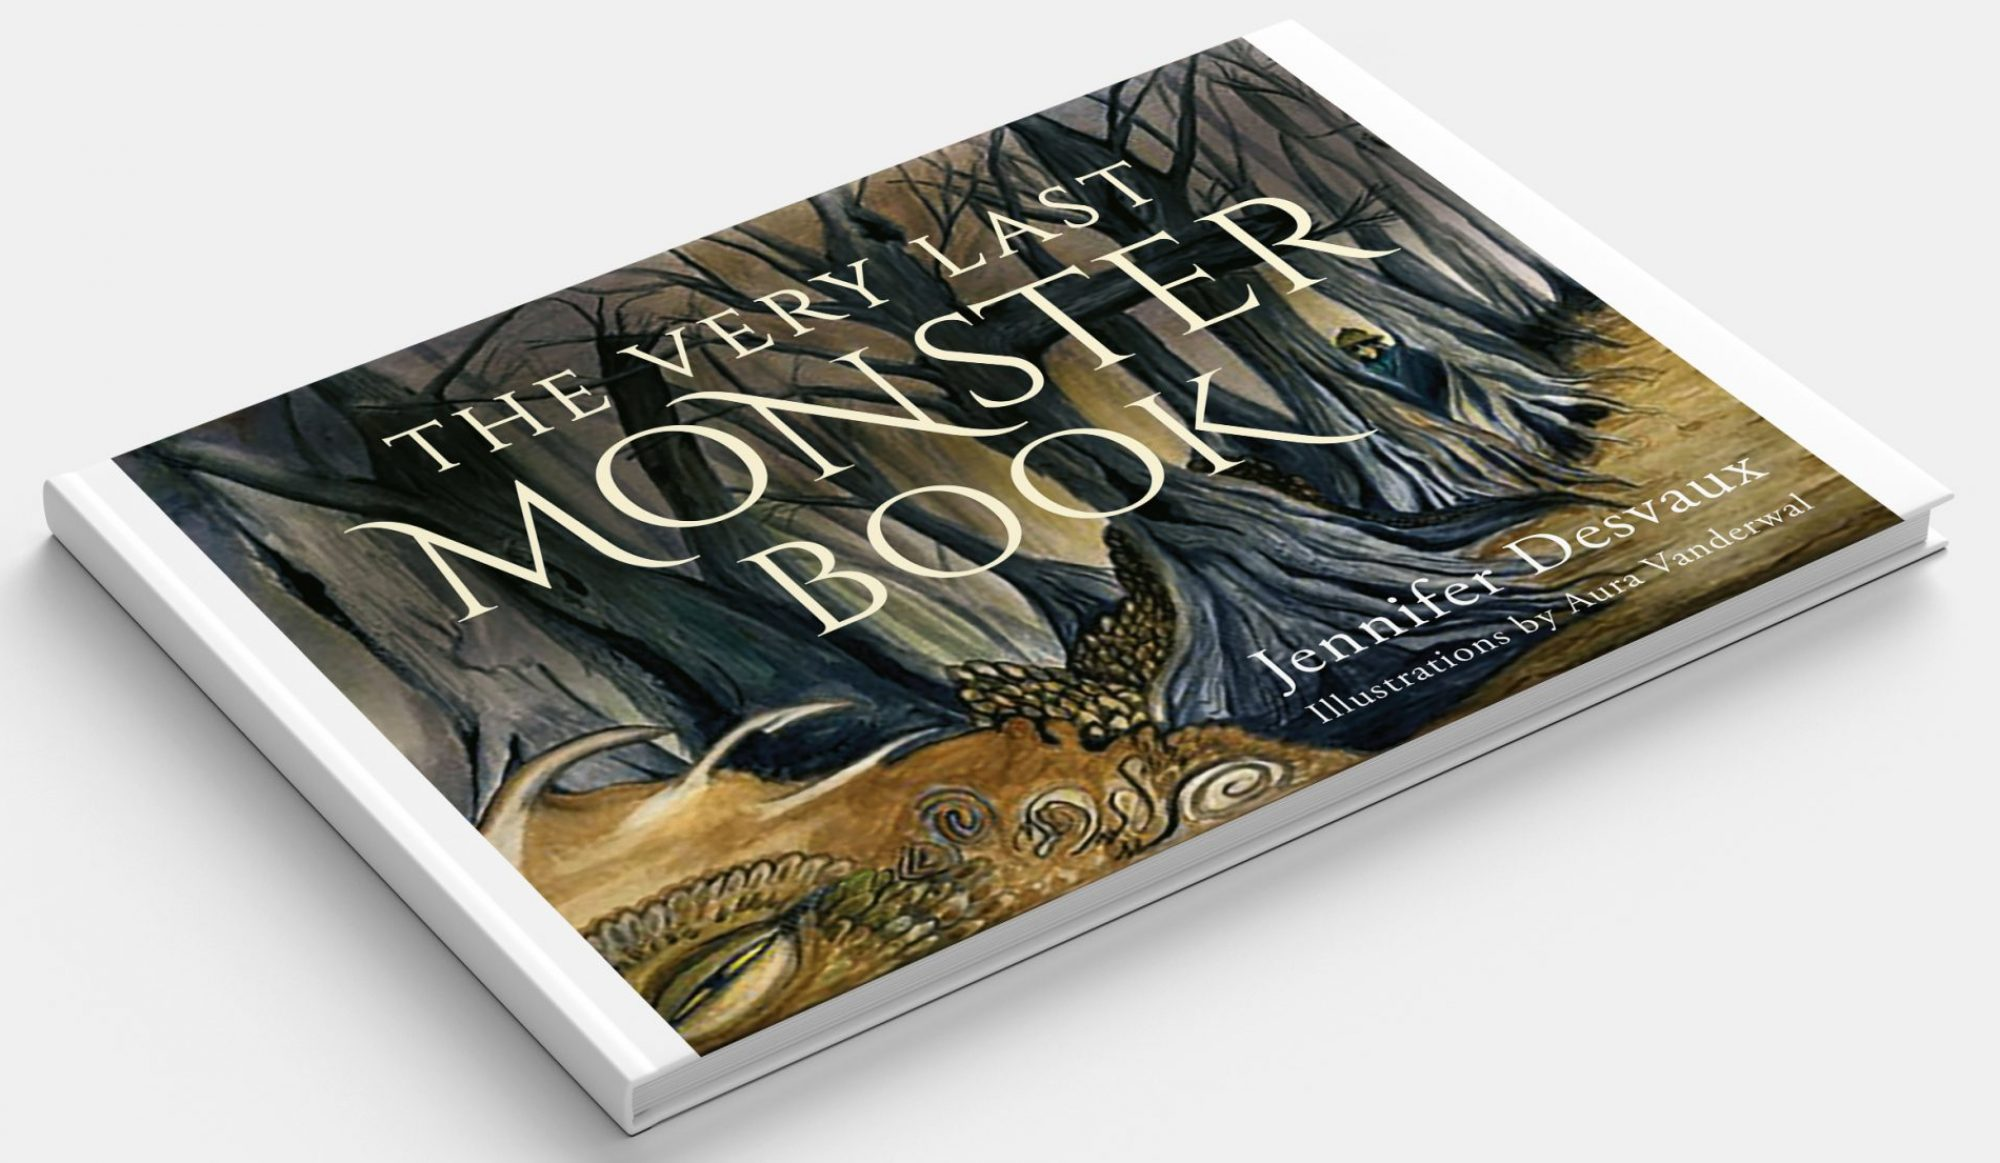 The Very Last Monster Book